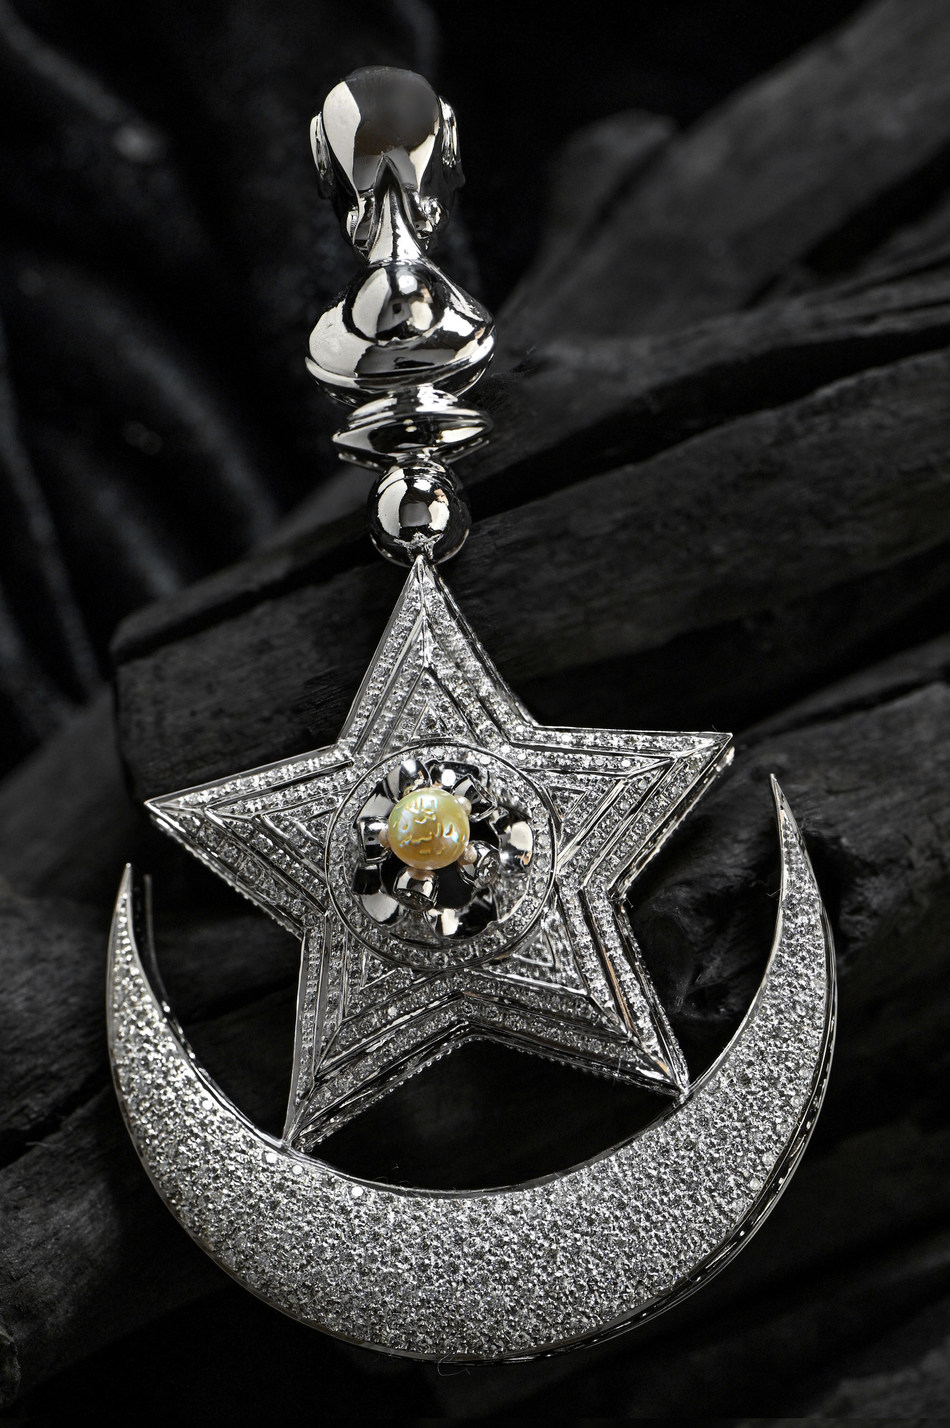 Allah Pearl designed in the form of a diamond pendant